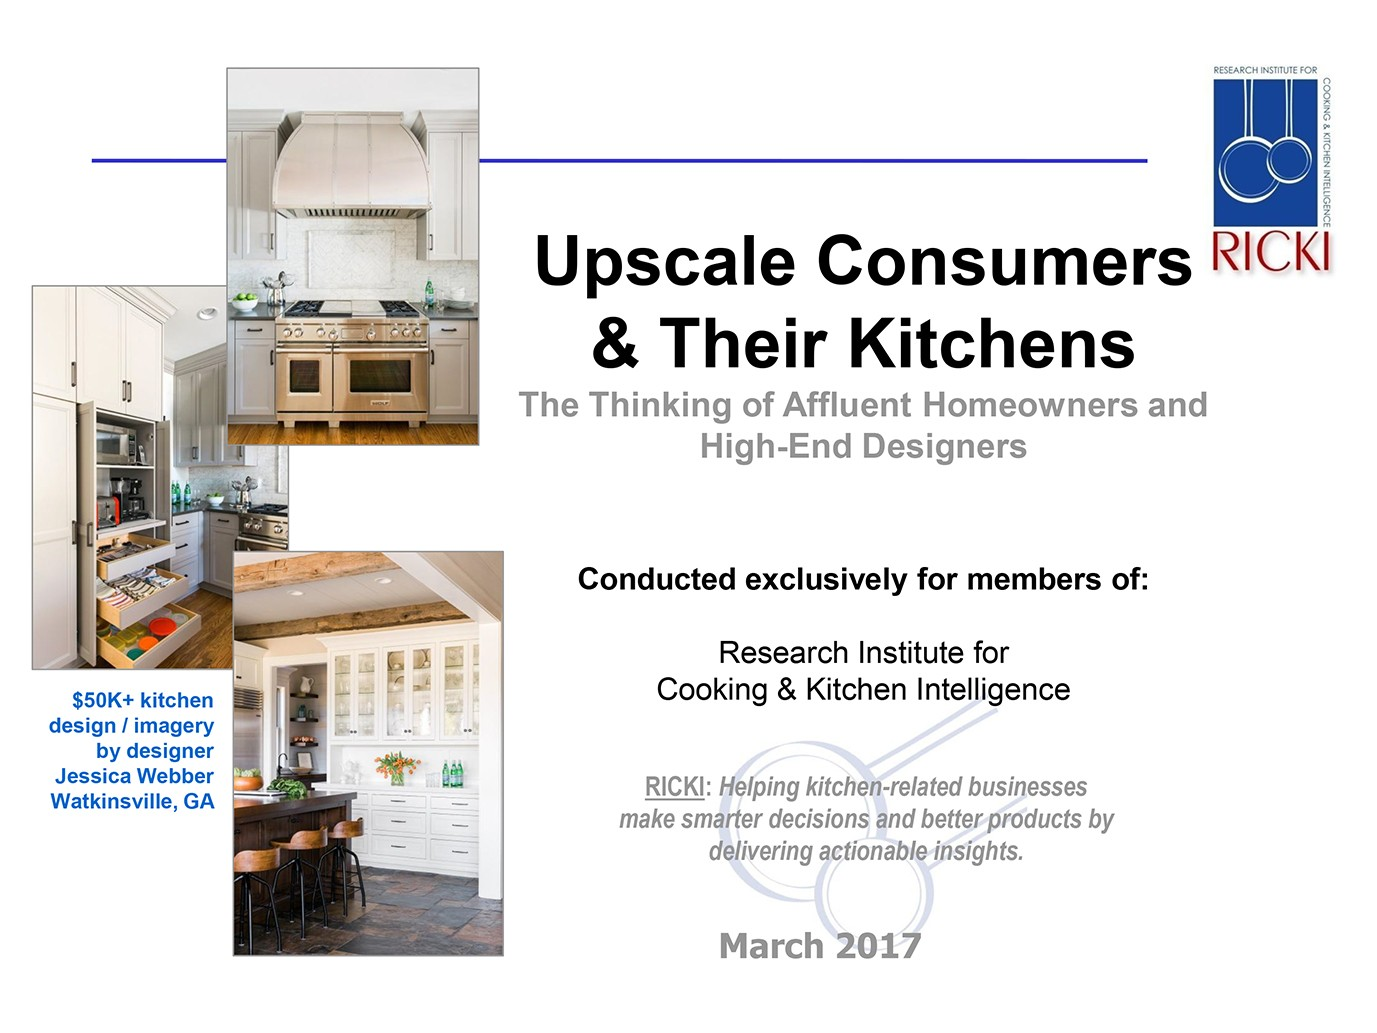 2017 Upscale Consumers & Their Kitchens: The Thinking of Affluent Homeowners and High-End Designers